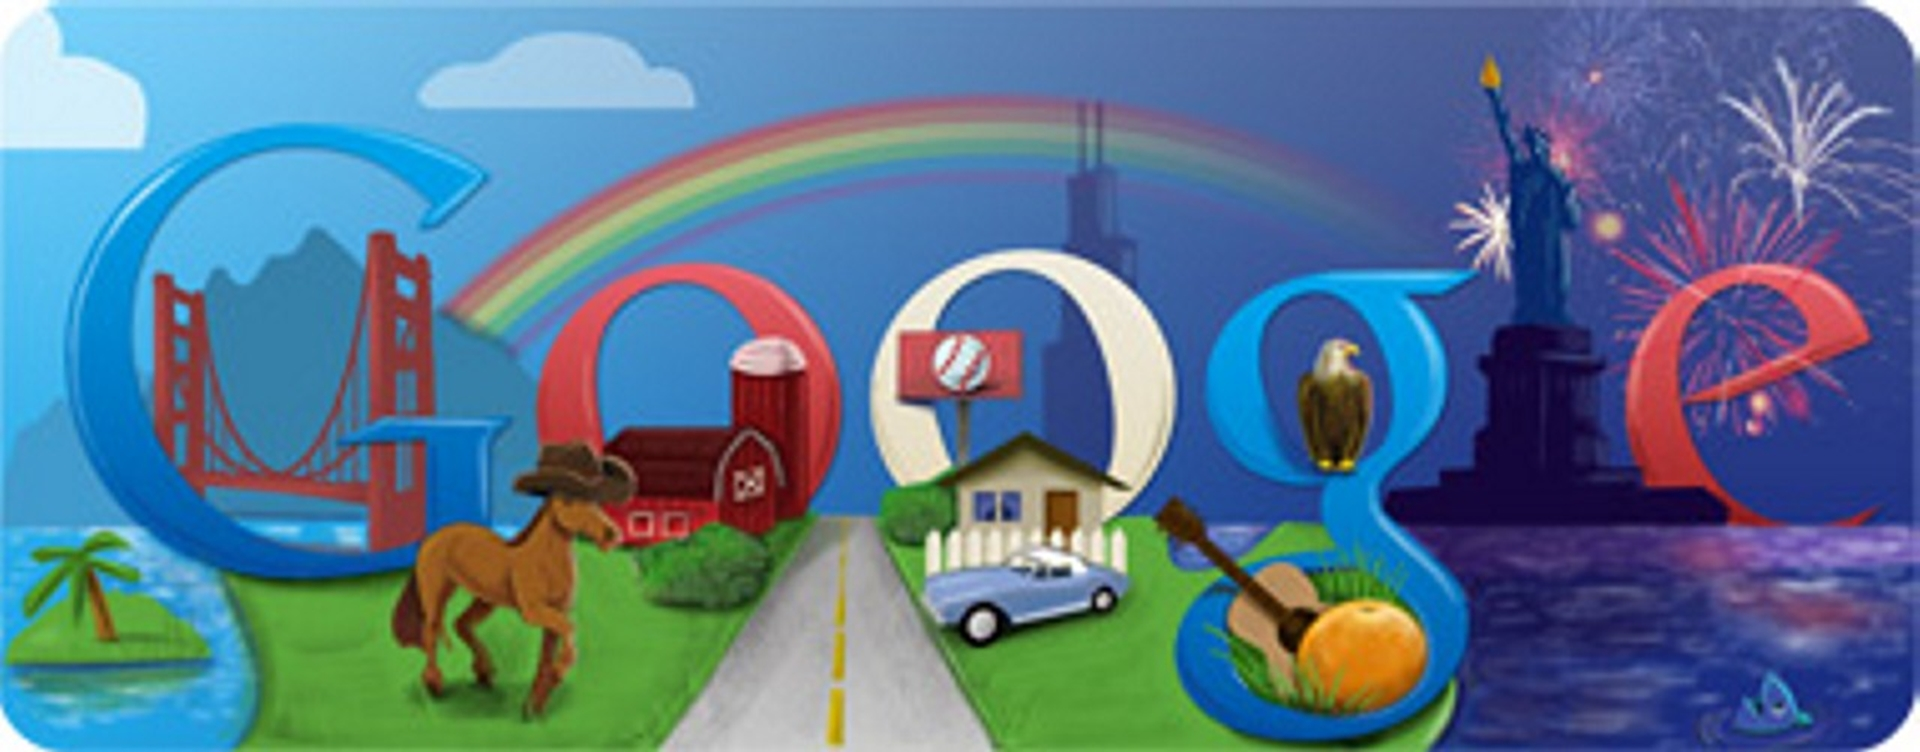 4th of July Google Doodle 2011